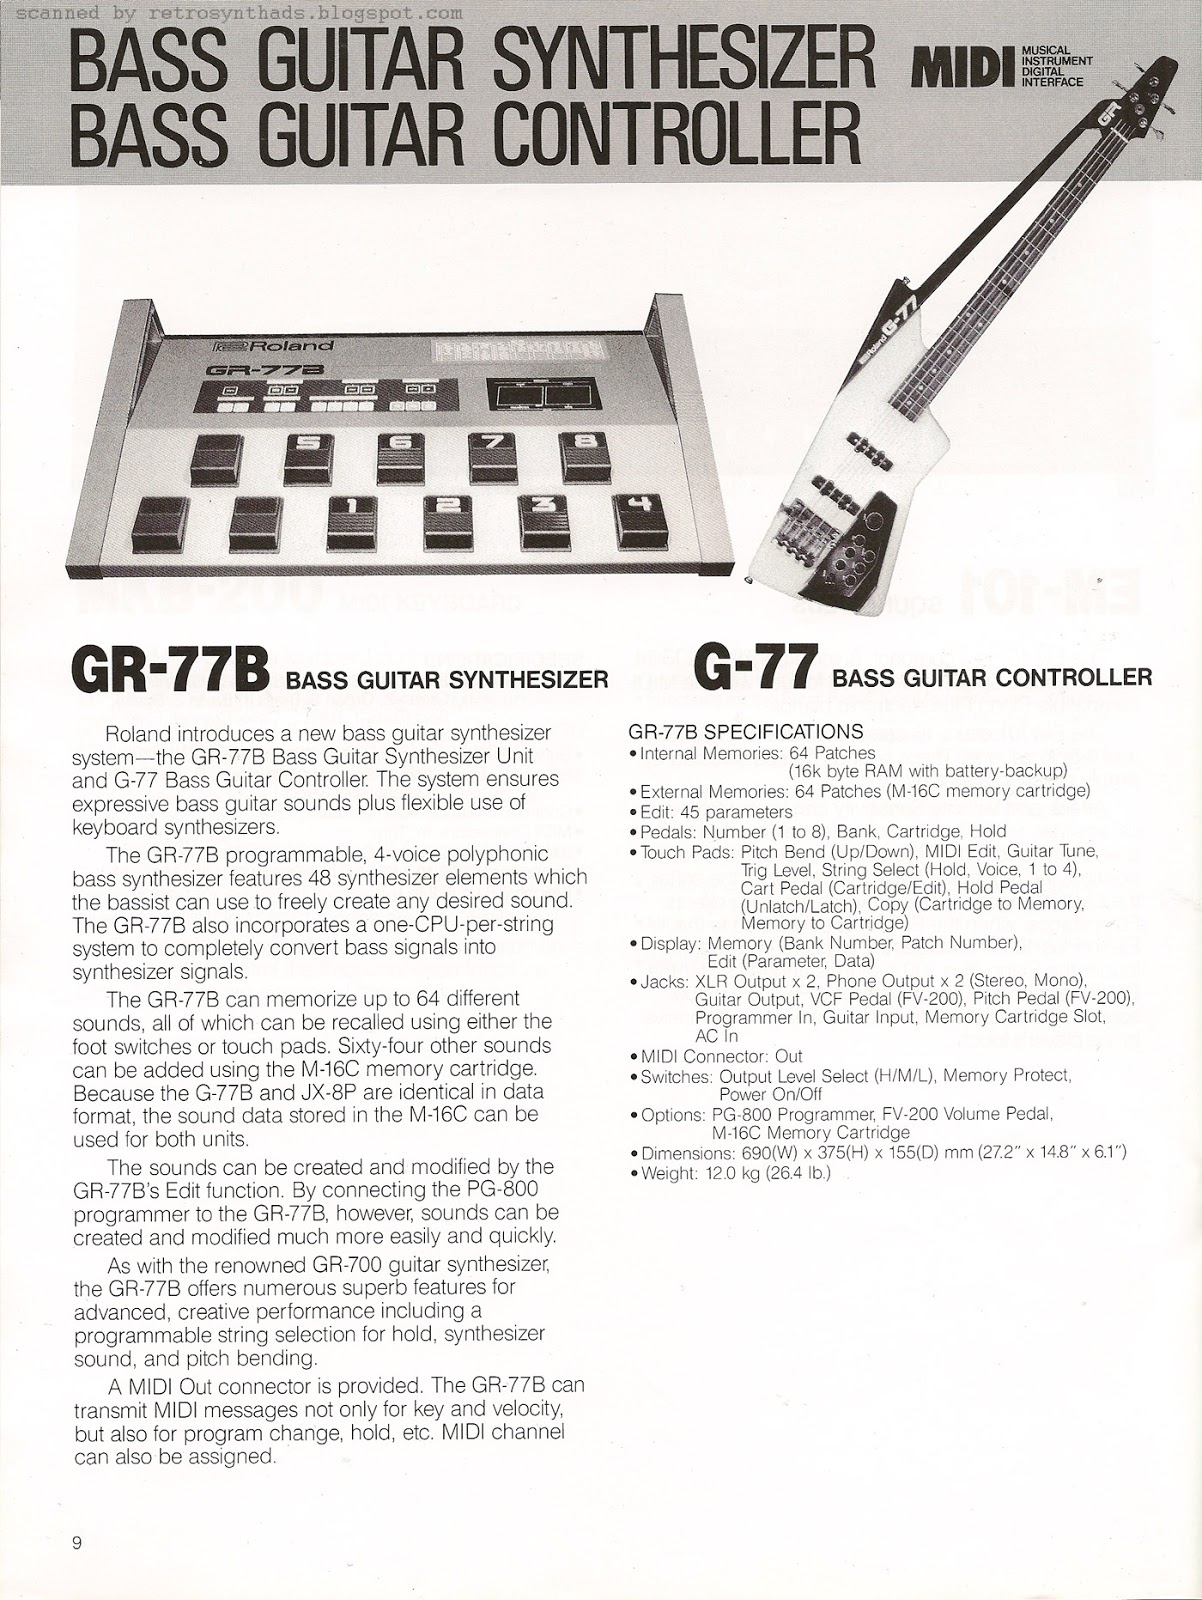 1985 Roland New Product News for NAMM show 16 page black and white brochure from June 1985